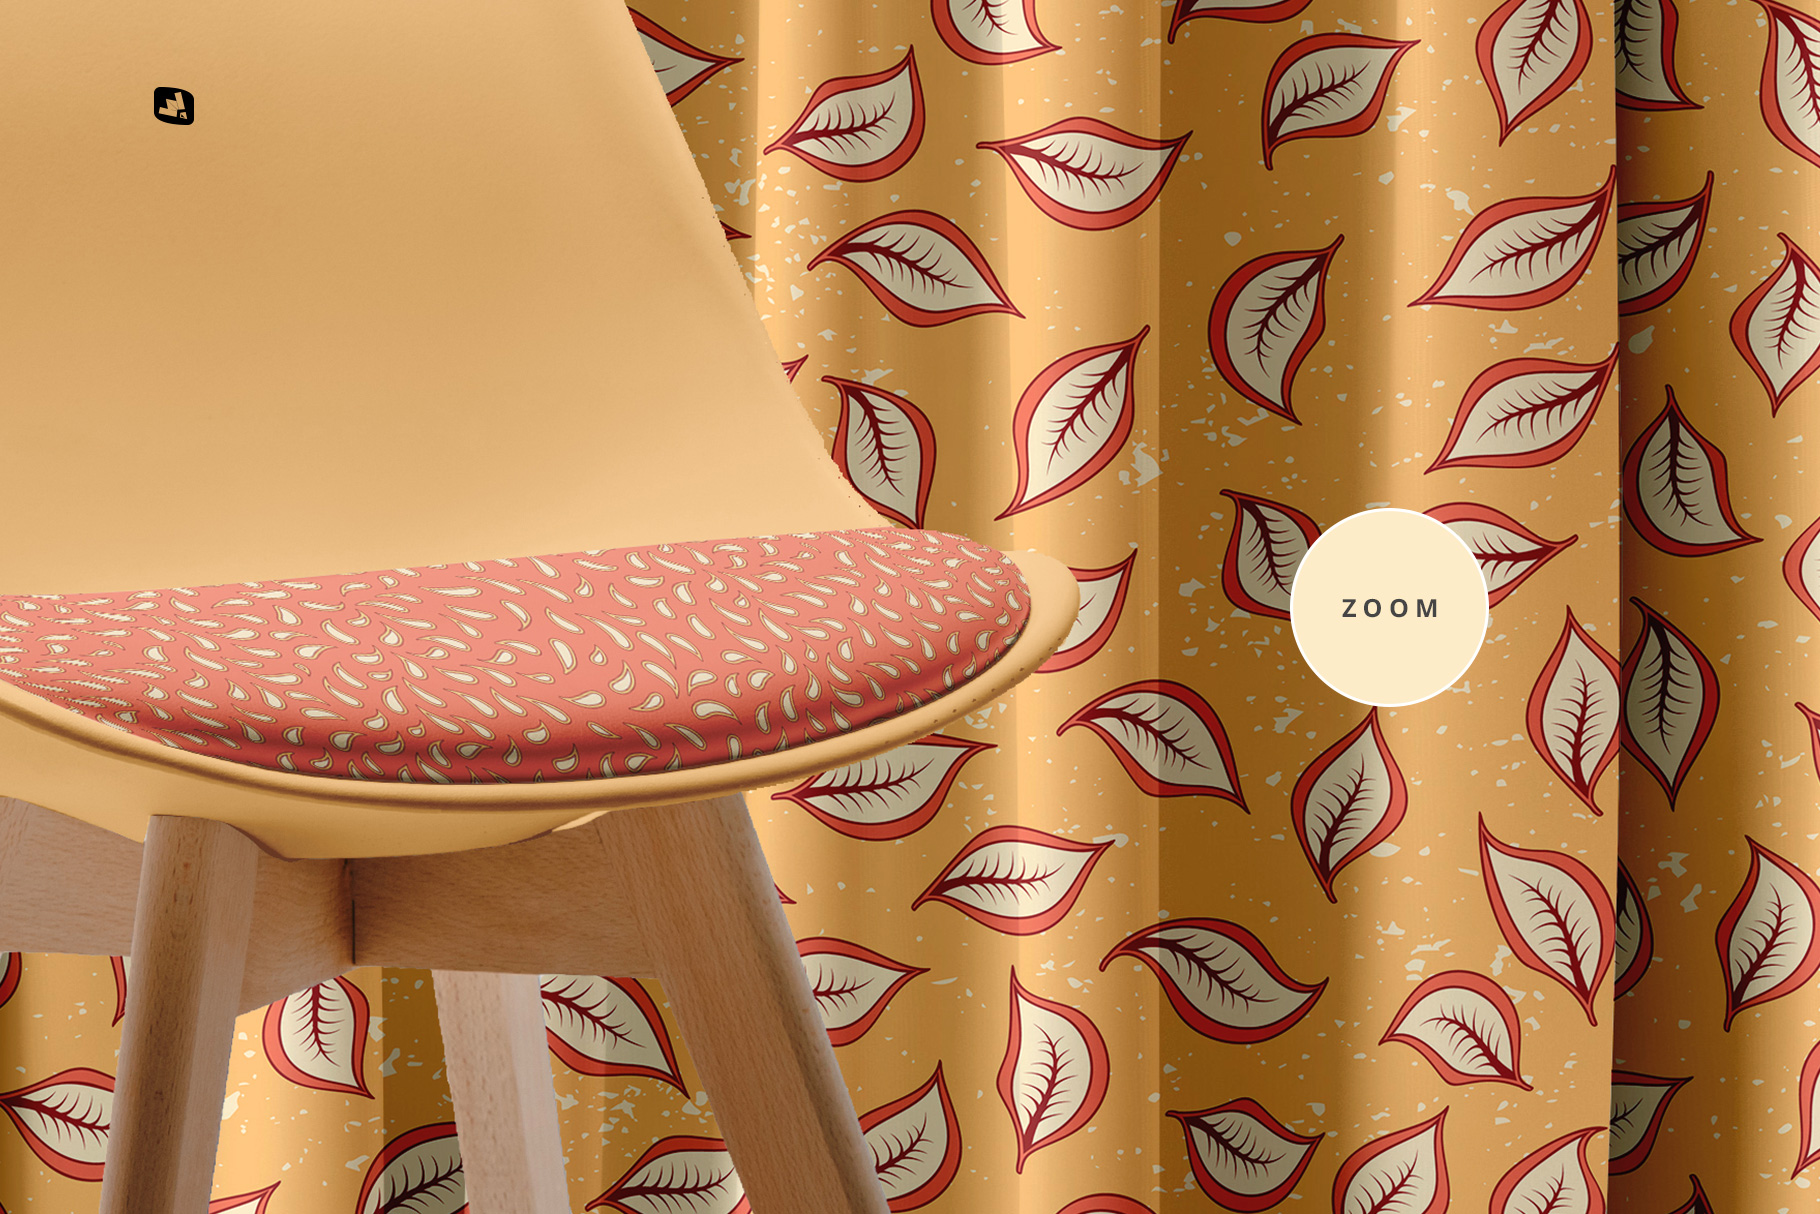 zoomed in image of the long curtain with chair mockup